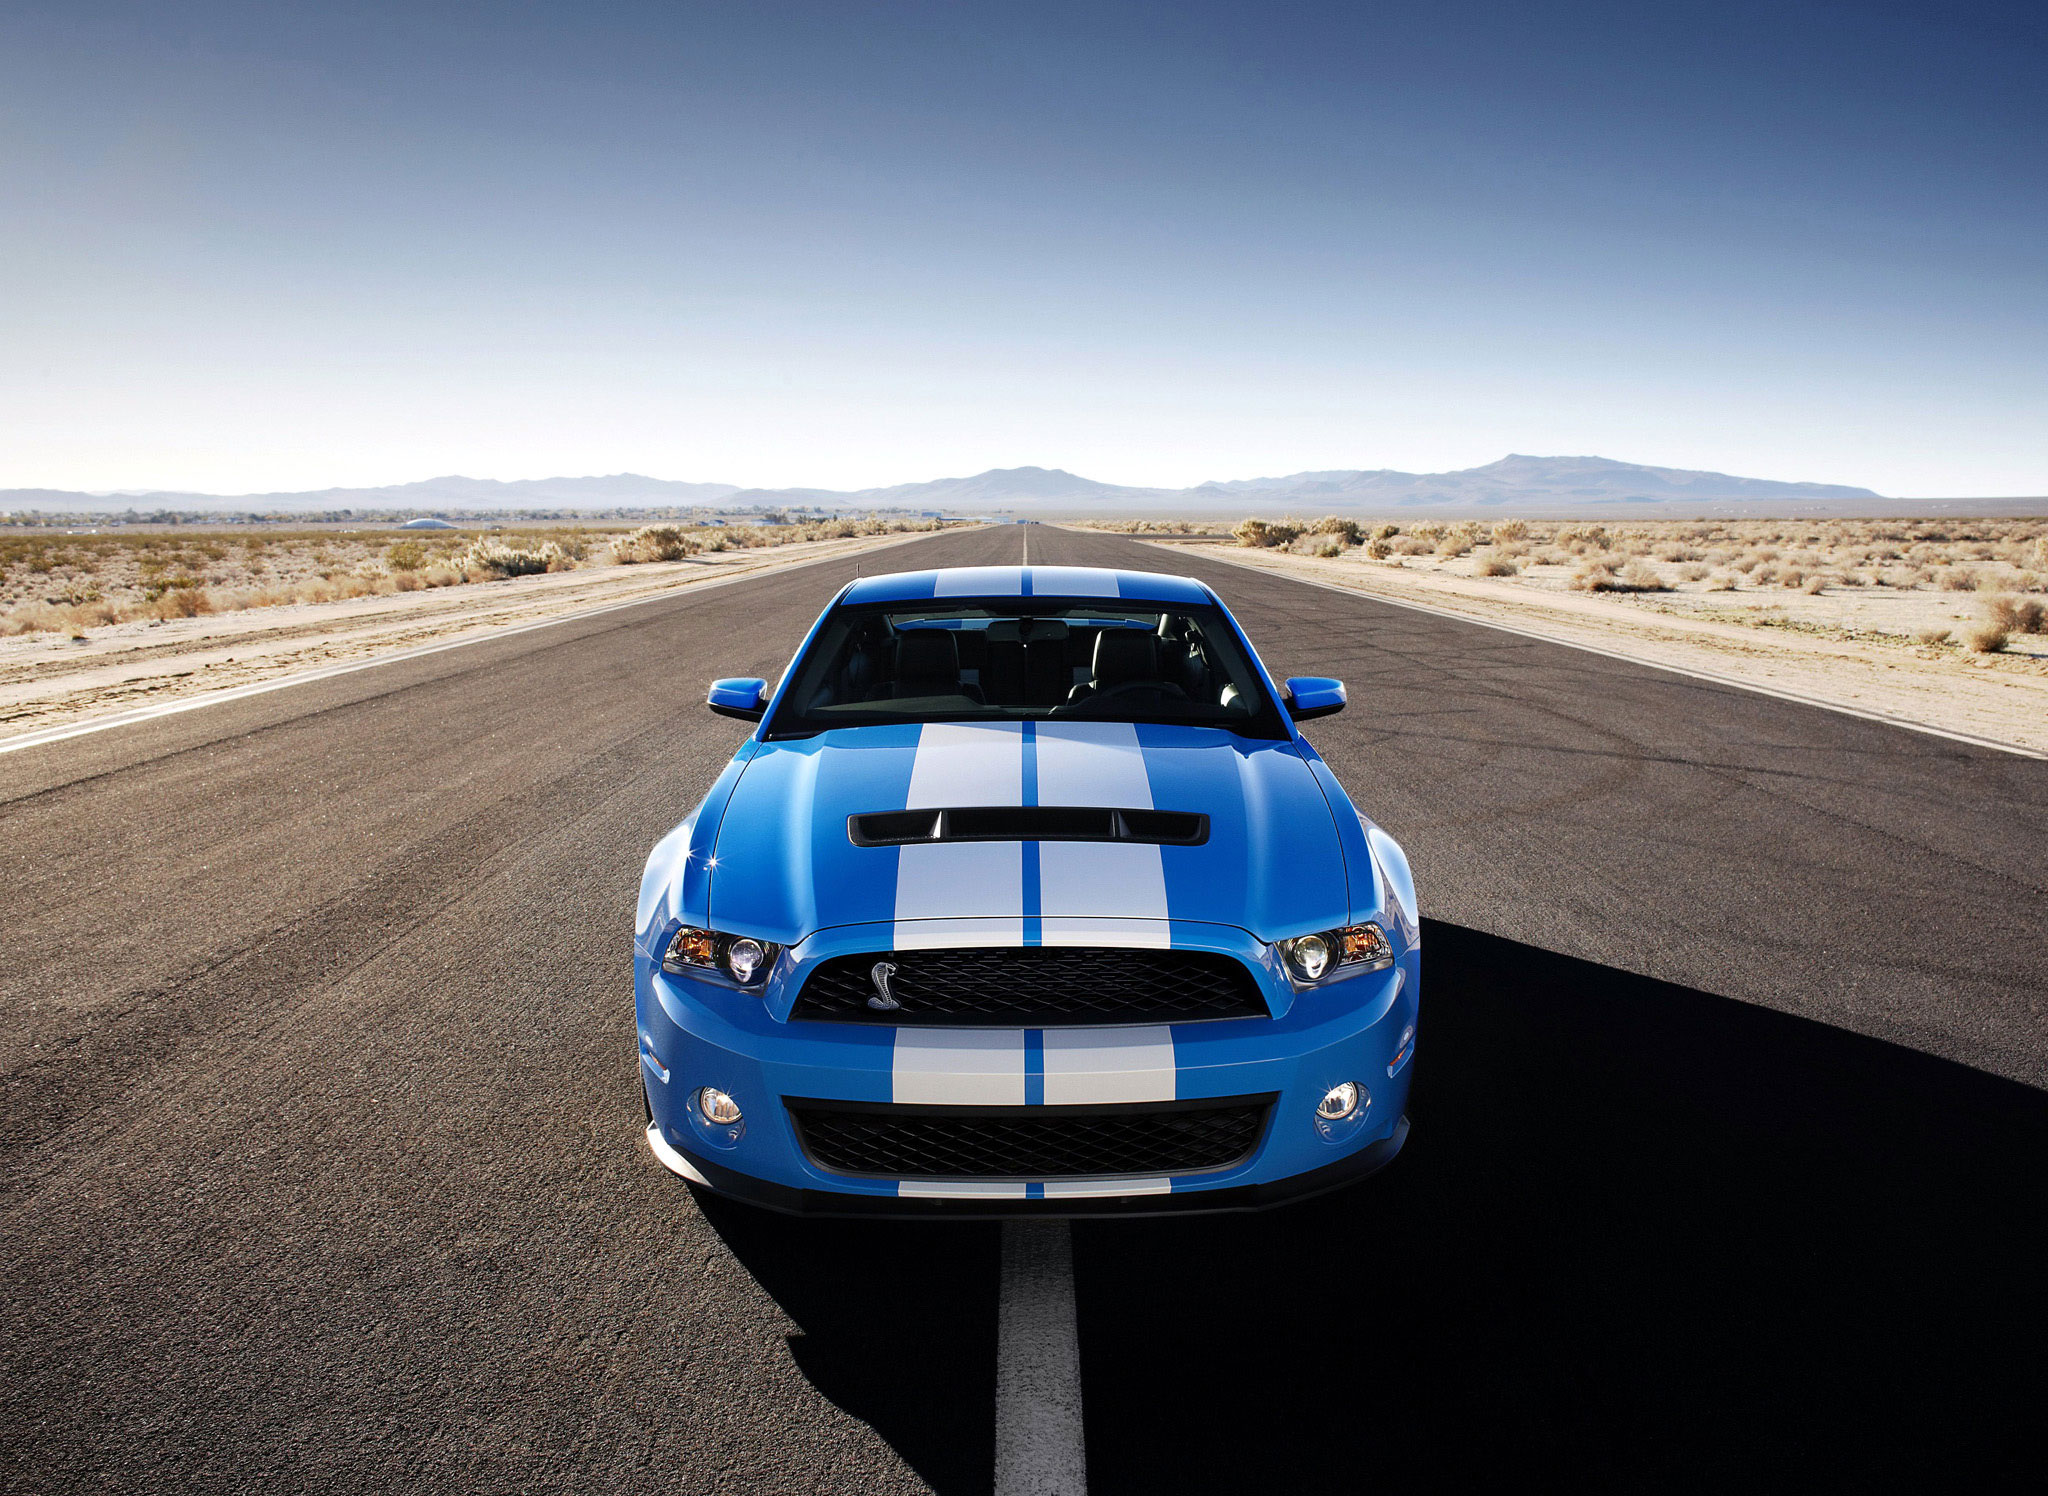 The 2007—2014 Mustang GT500 is already a collectible thumbnail